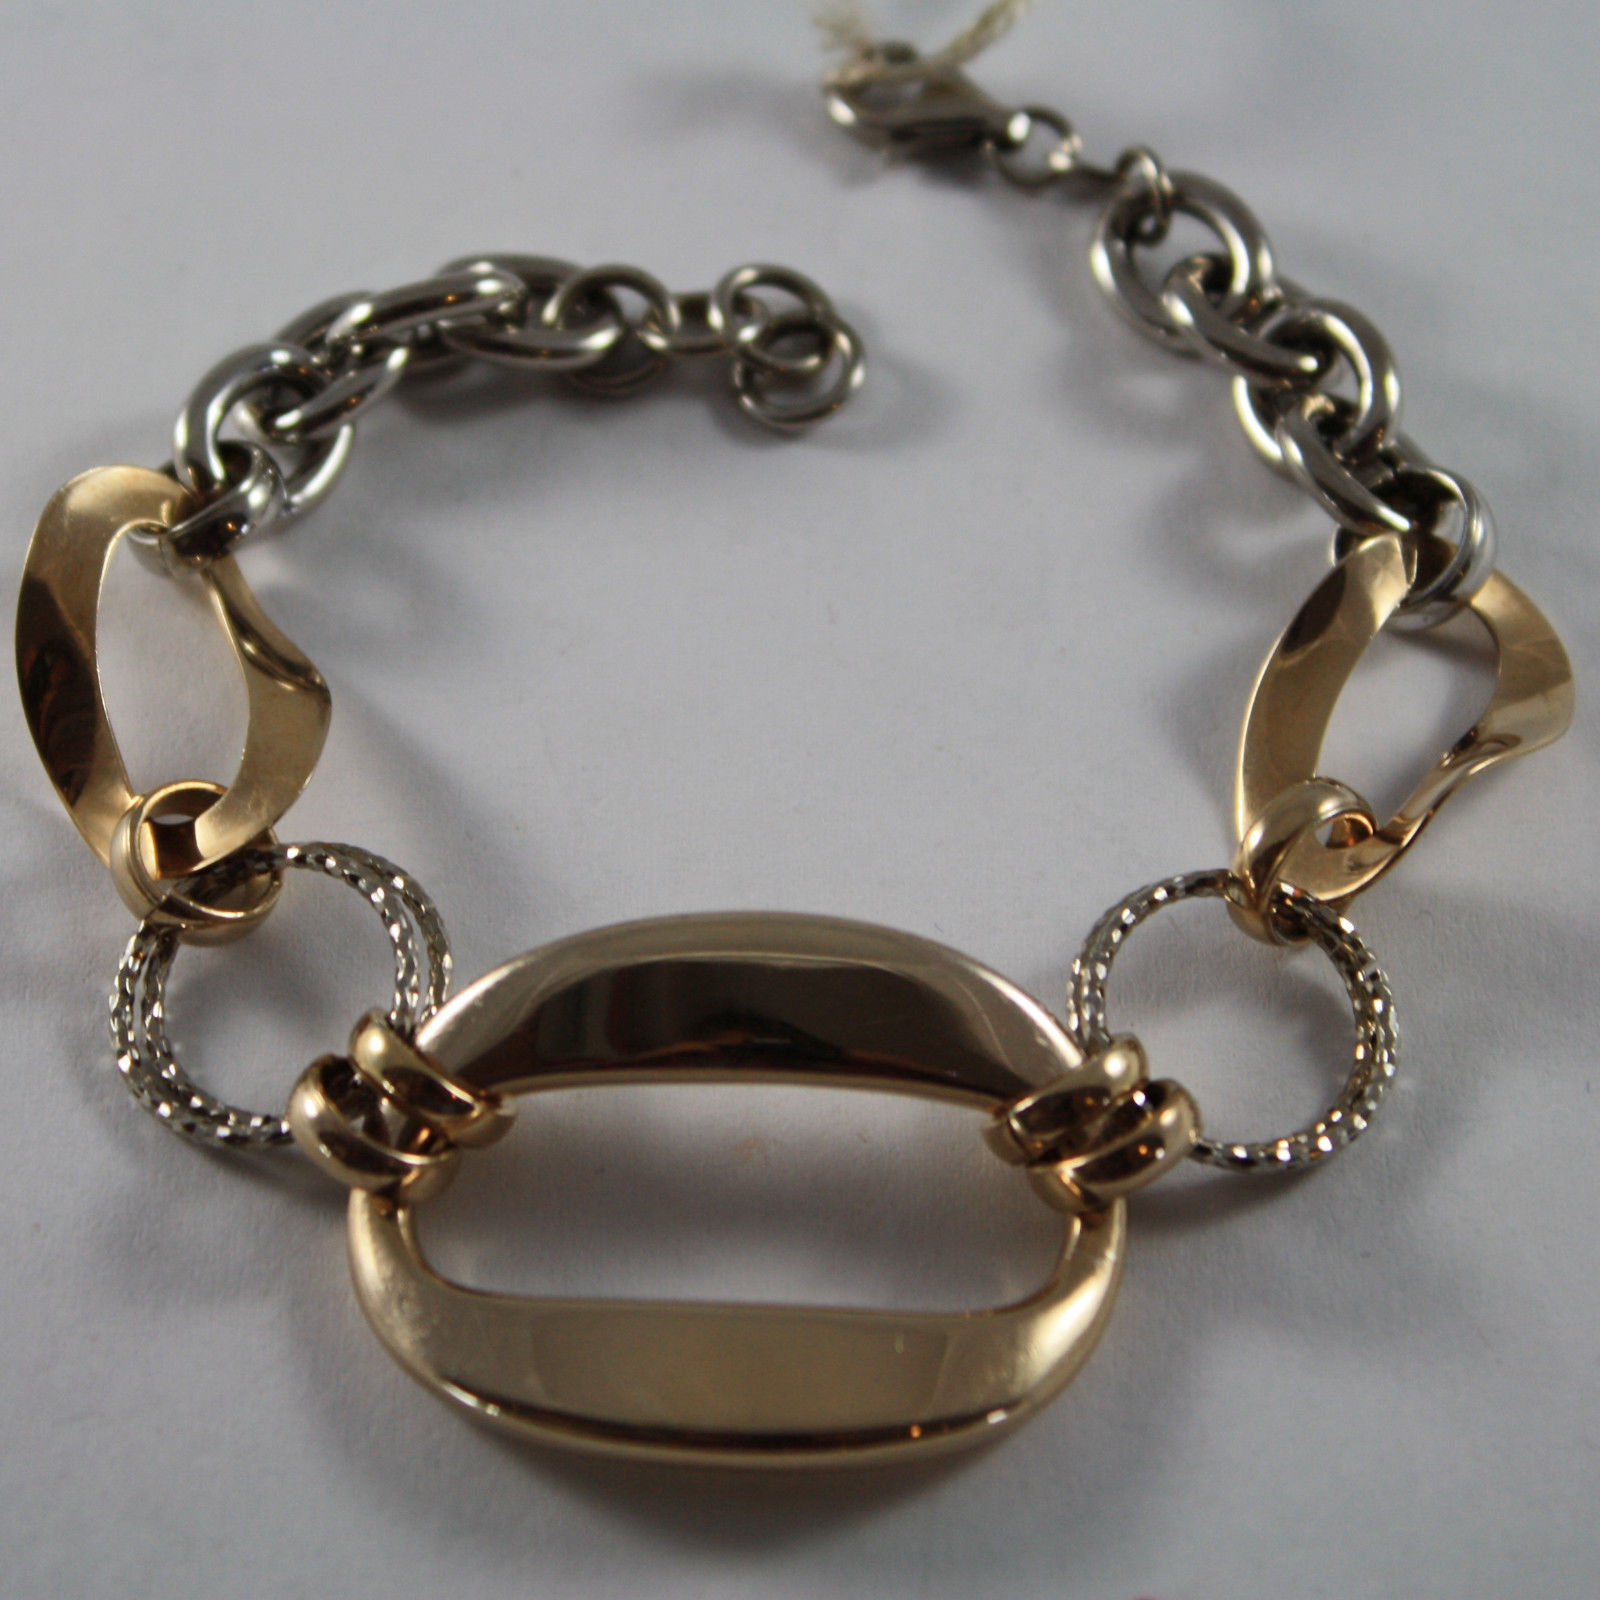 .925 RHODIUM SILVER AND ROSE GOLD PLATED BRACELET WITH OVAL AND CIRCLES